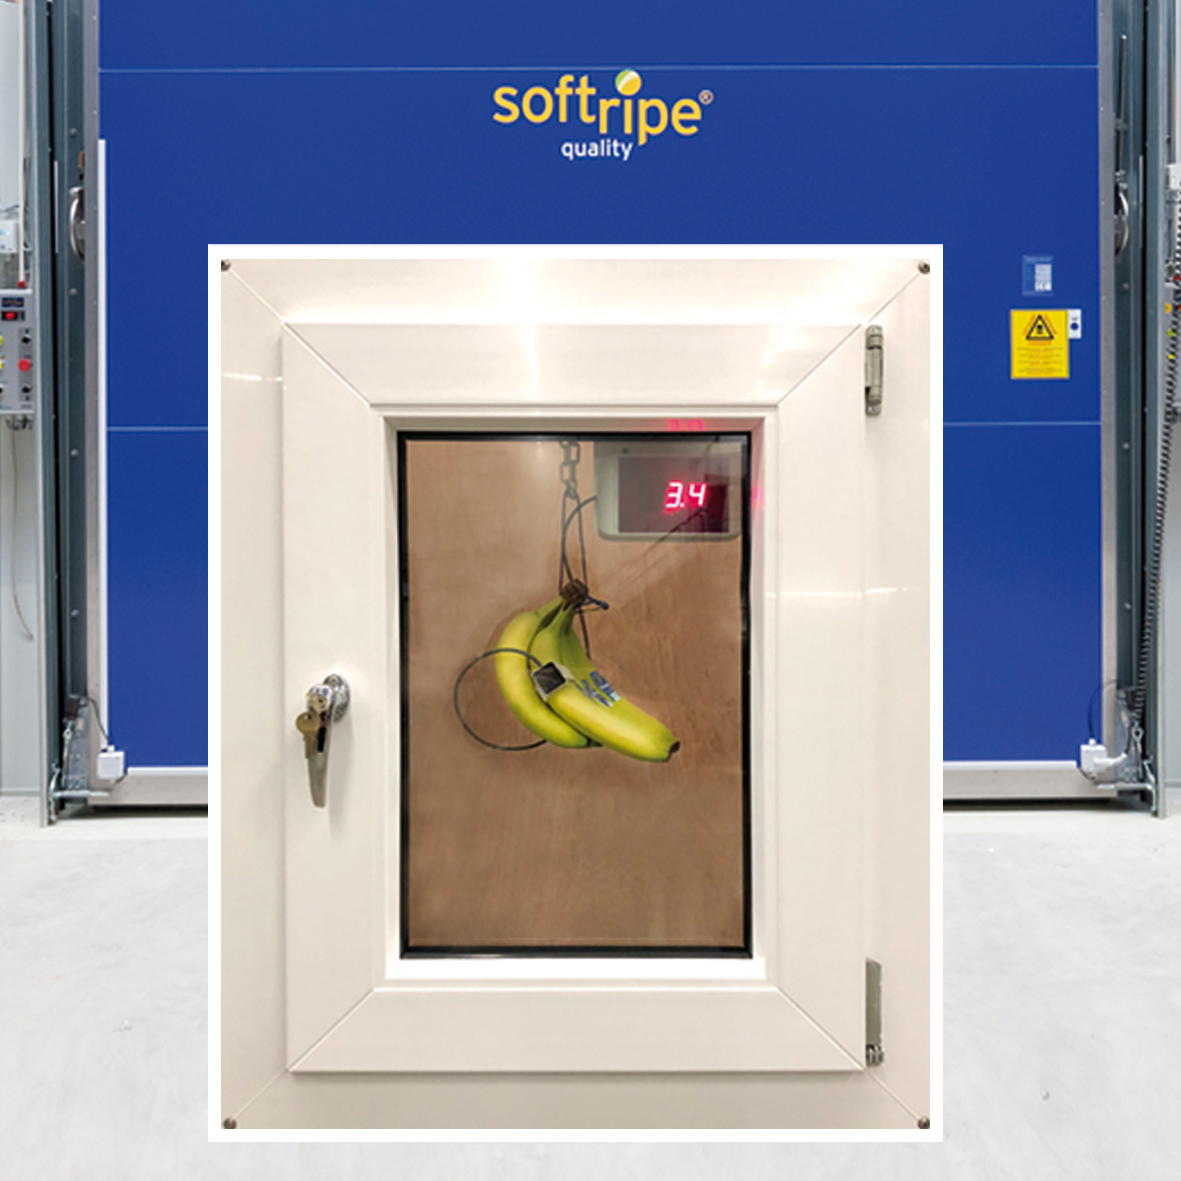 Softripe Ripening Technology